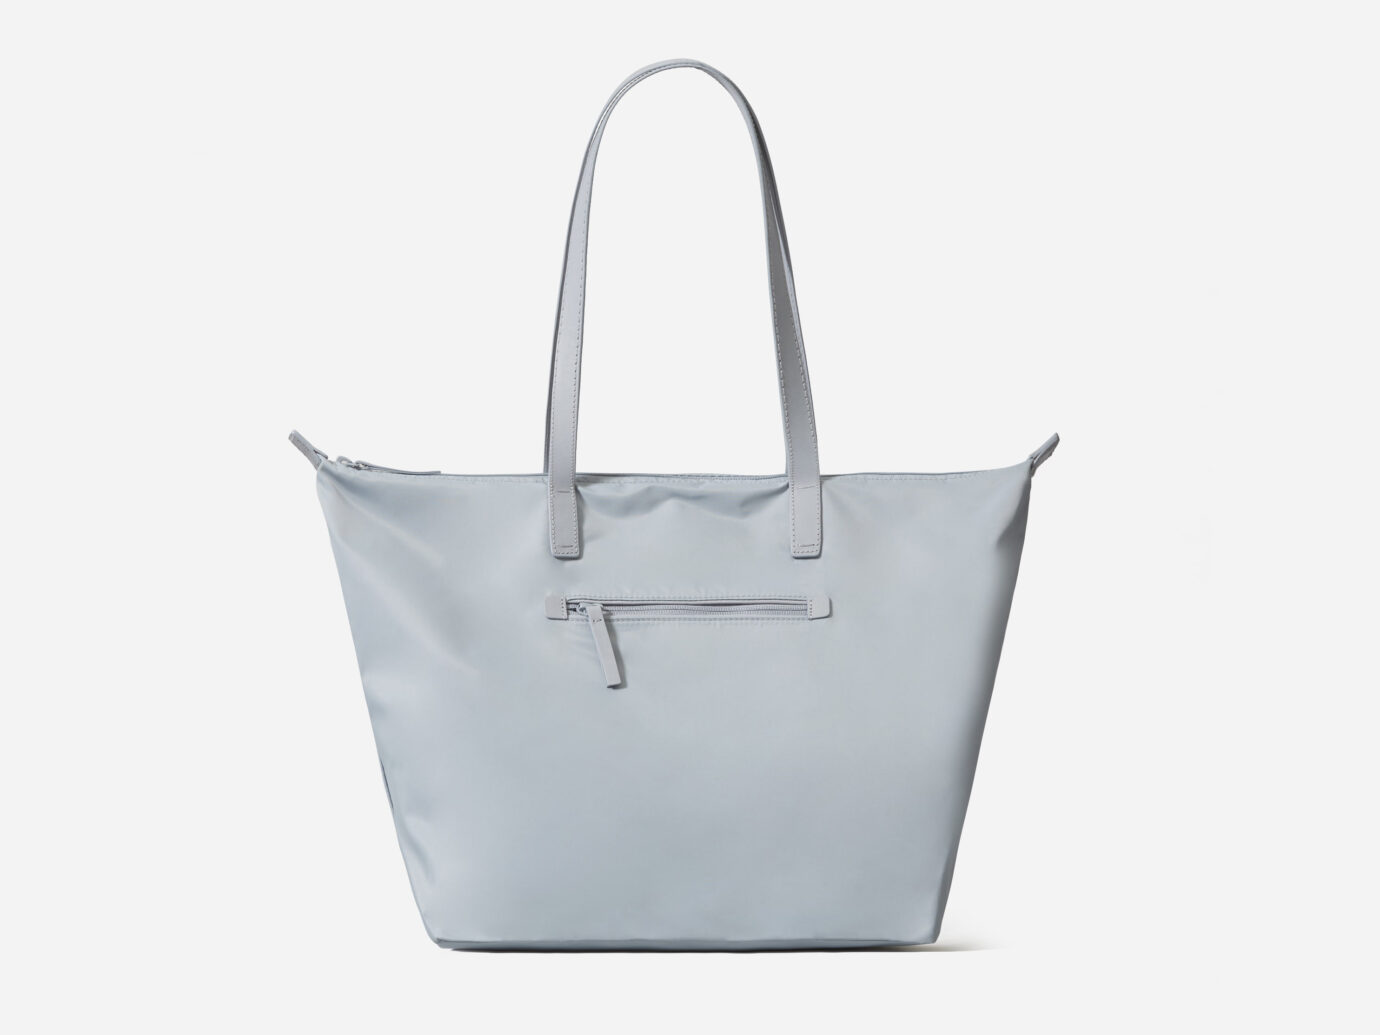 Everlane The ReNew Traveler Tote